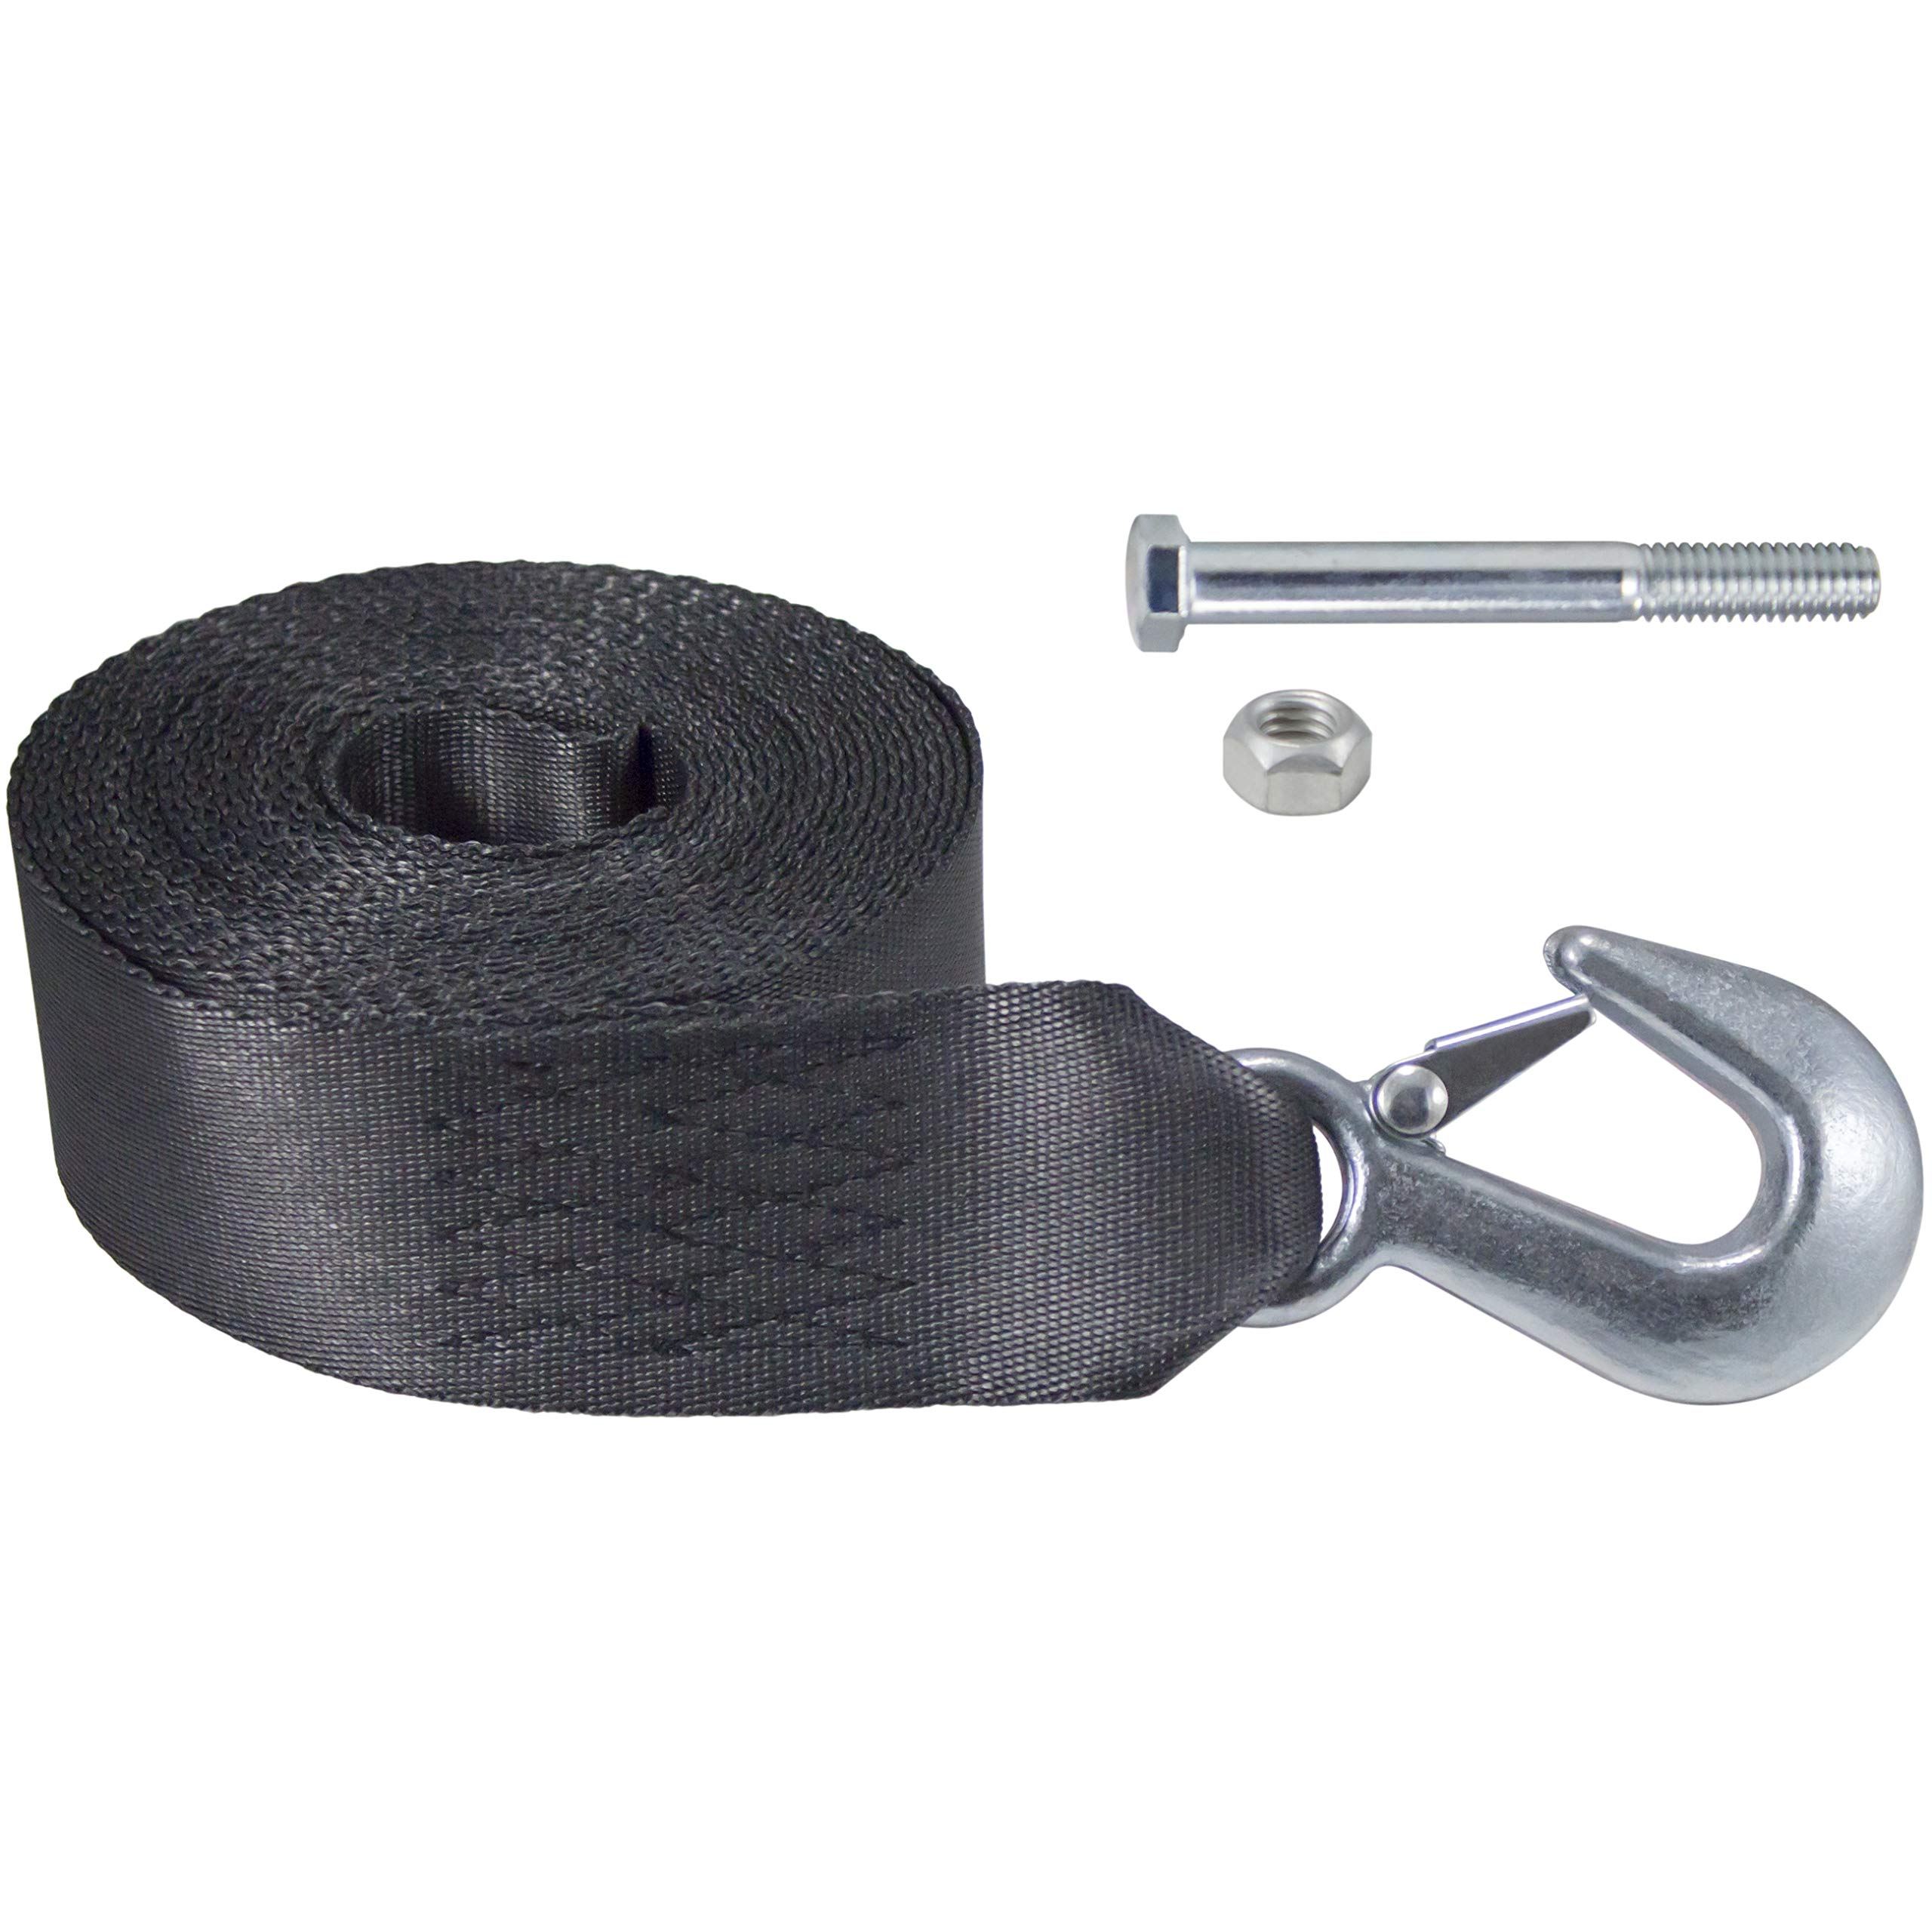 Dutton-Lainson Company 6542 20'/4800 lbs Winch Strap with Hook by Goldenrod